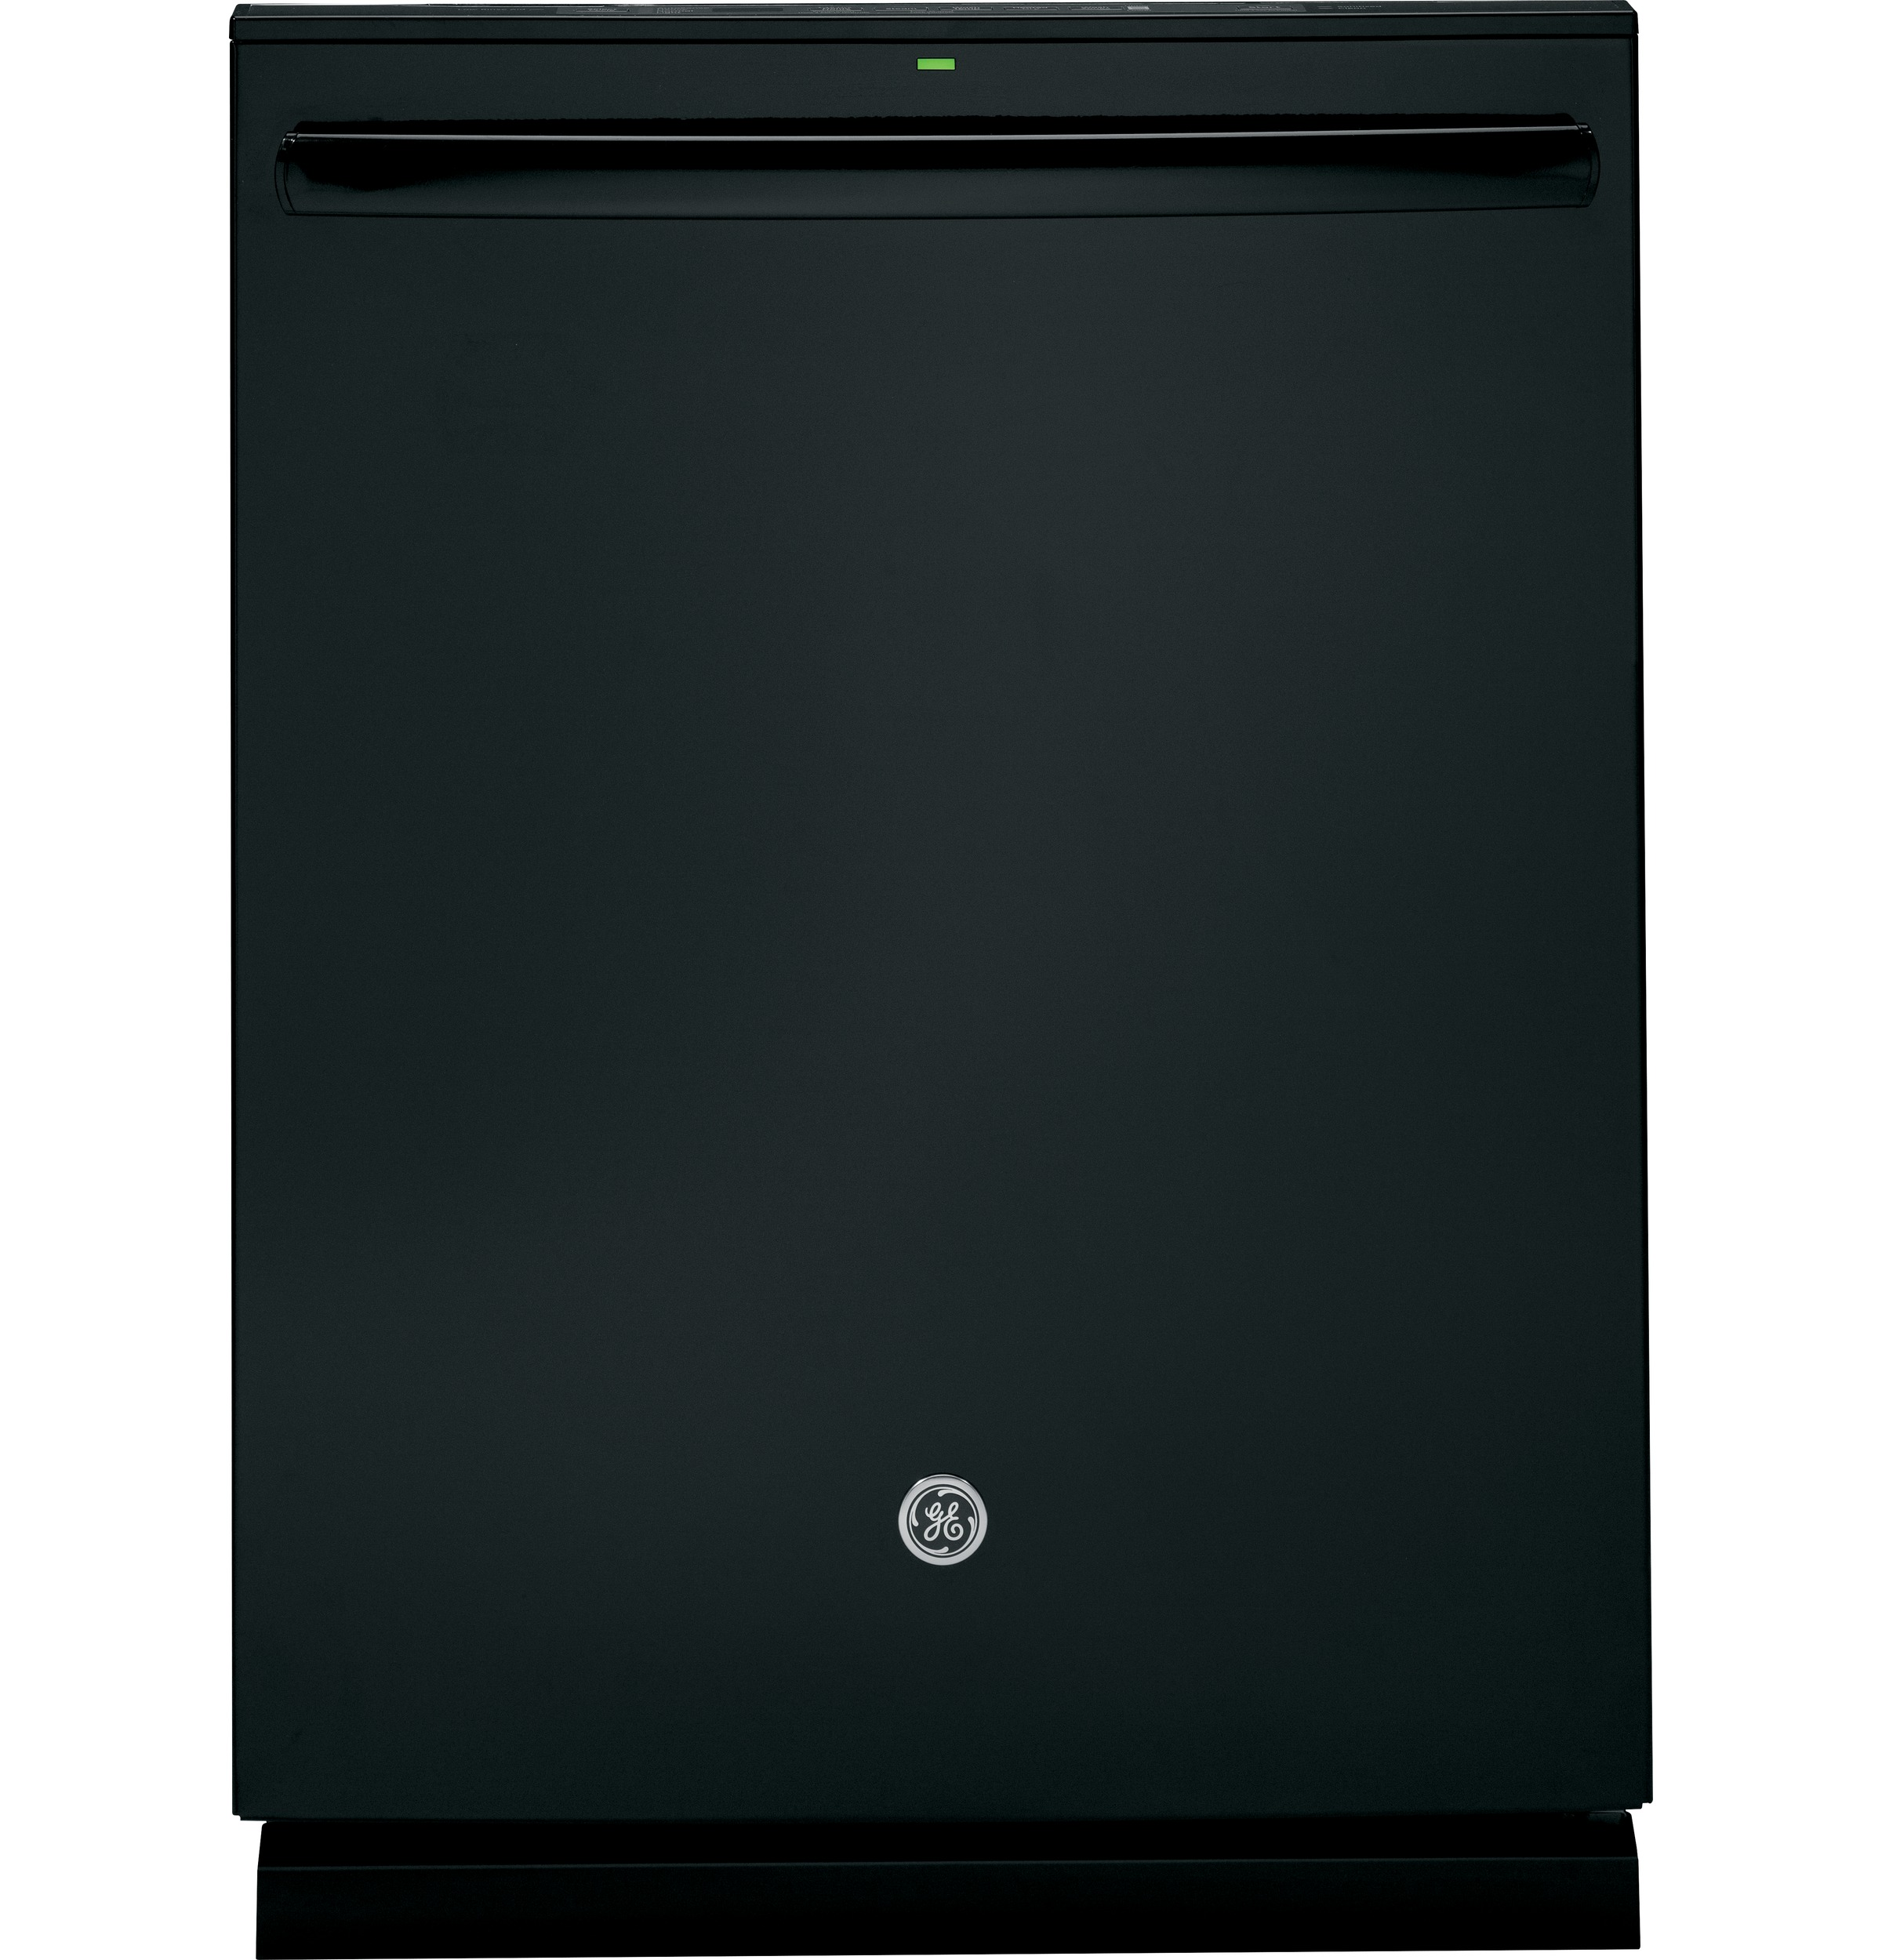 Ge gdt695sgjbb ge stainless steel interior dishwasher - Dishwasher with stainless steel interior ...